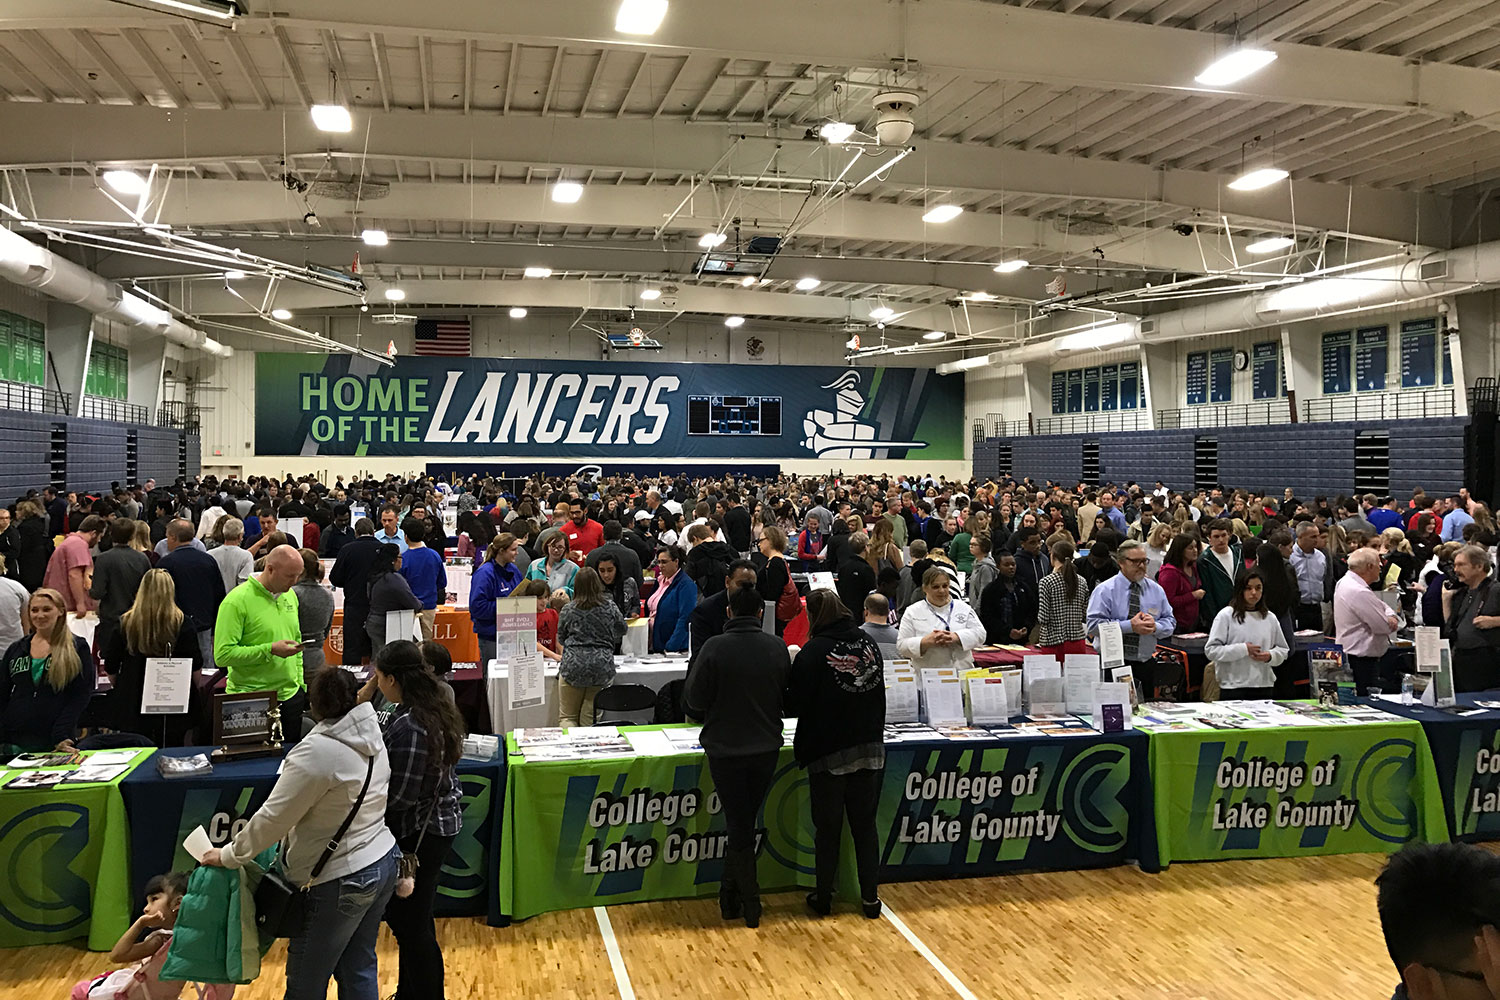 College Of Lake County Spring College Fair Attendance Exceeds Expectations